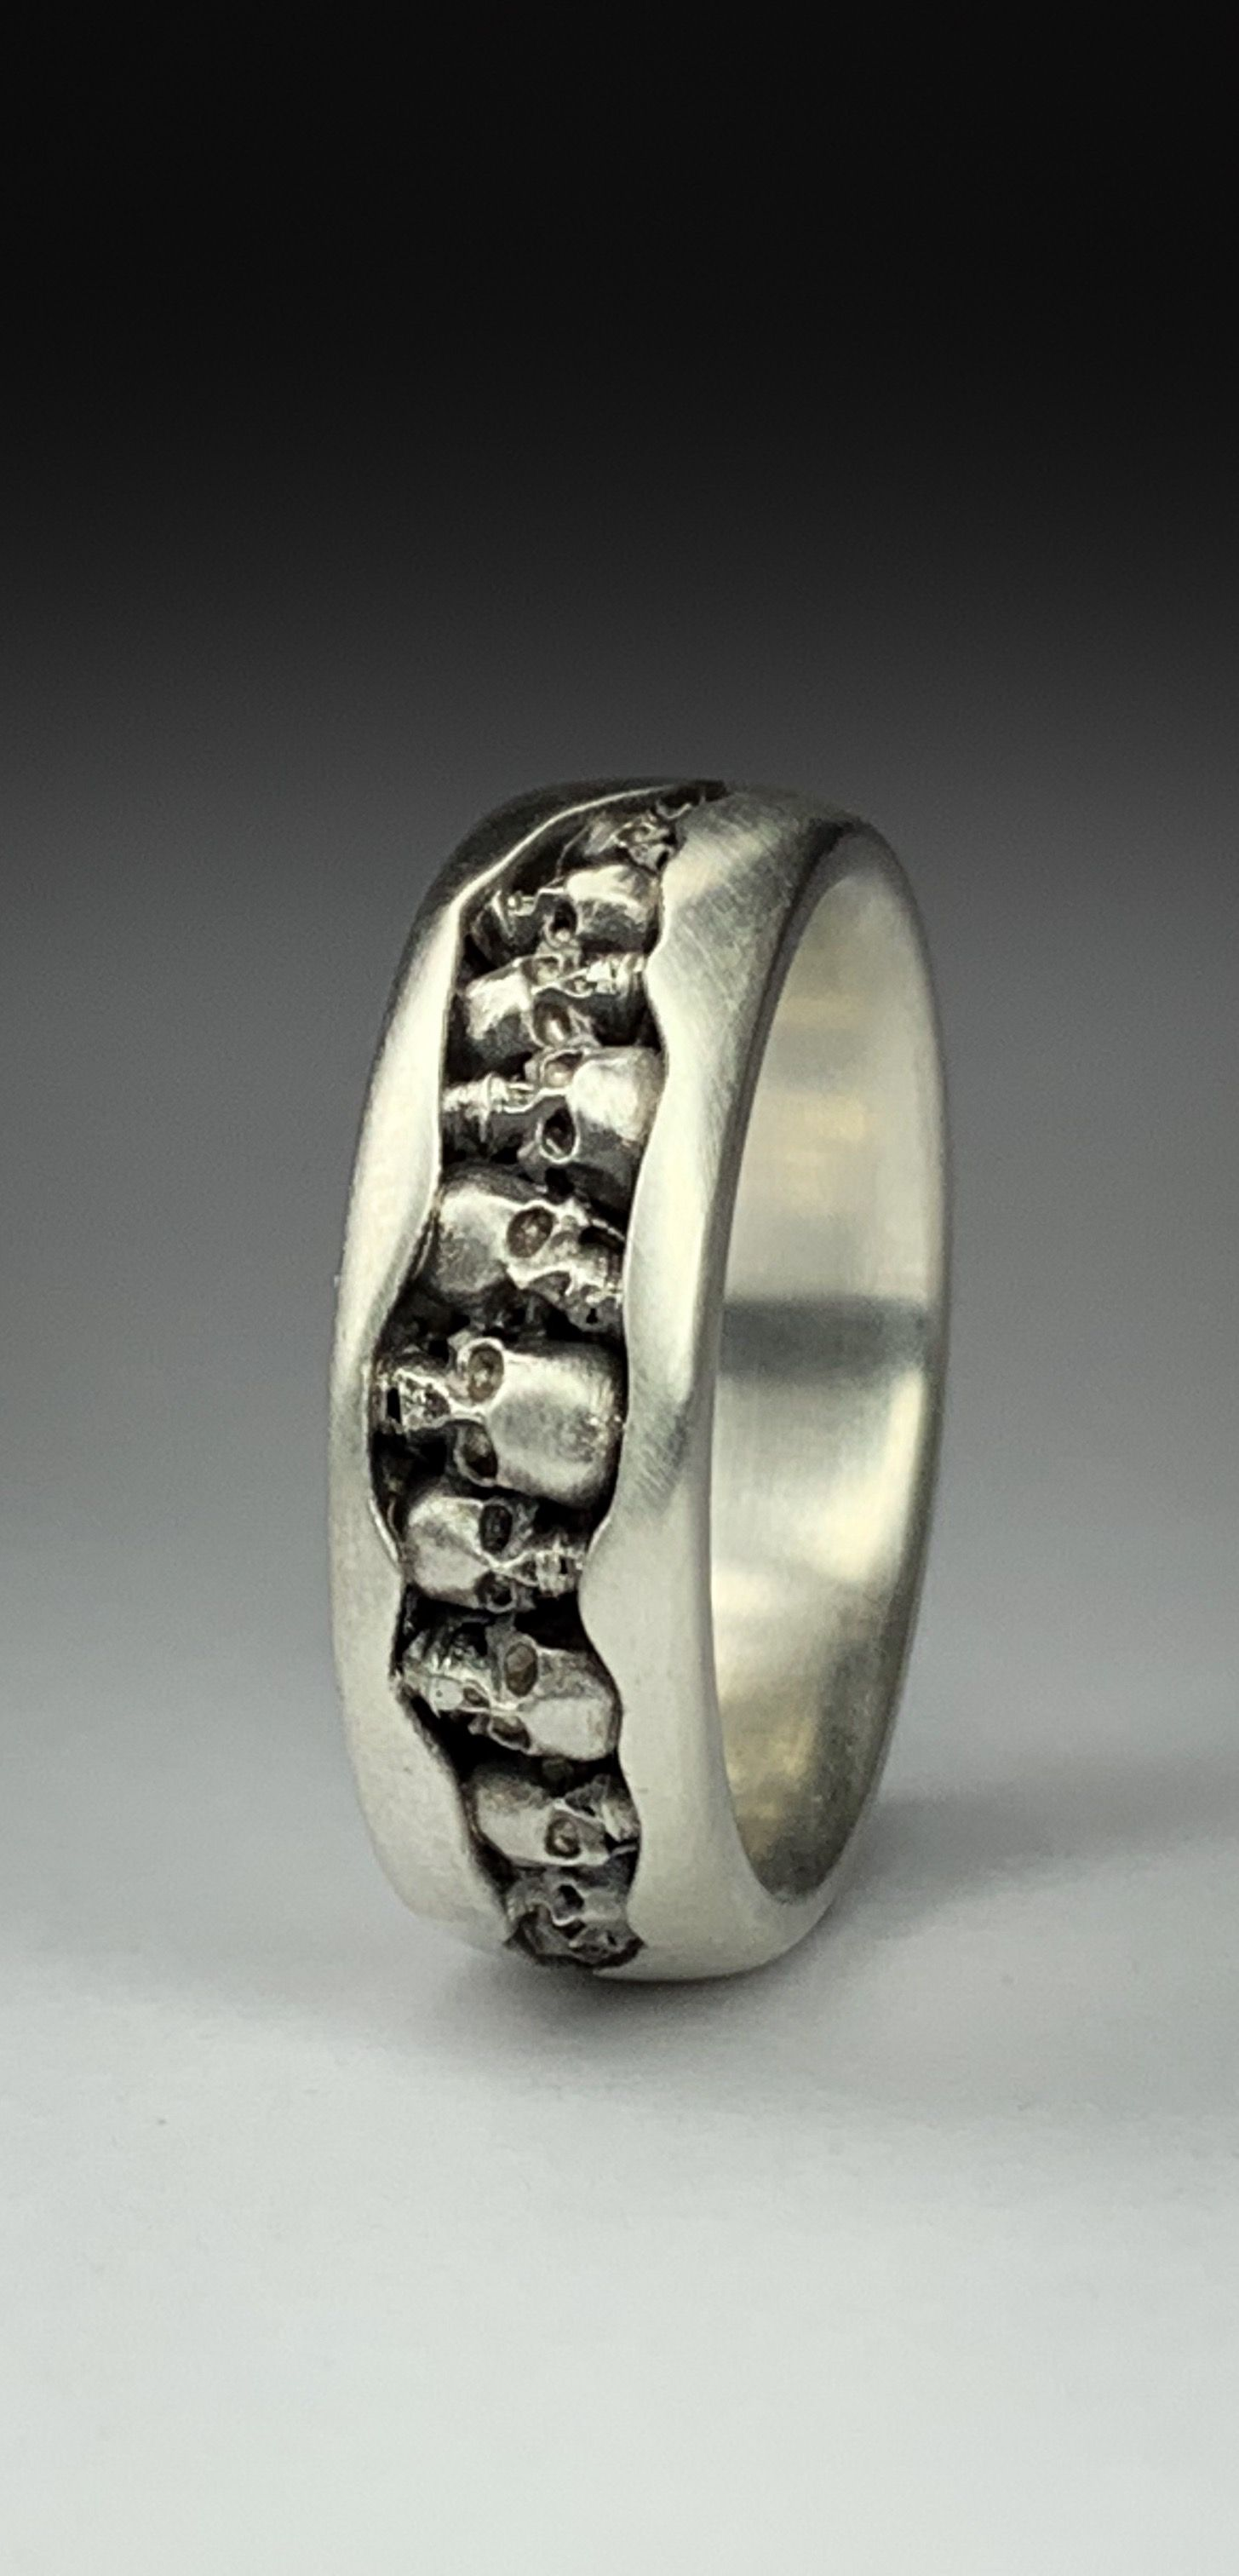 Bespoke skull ring made by Timothy Roe Jewellery